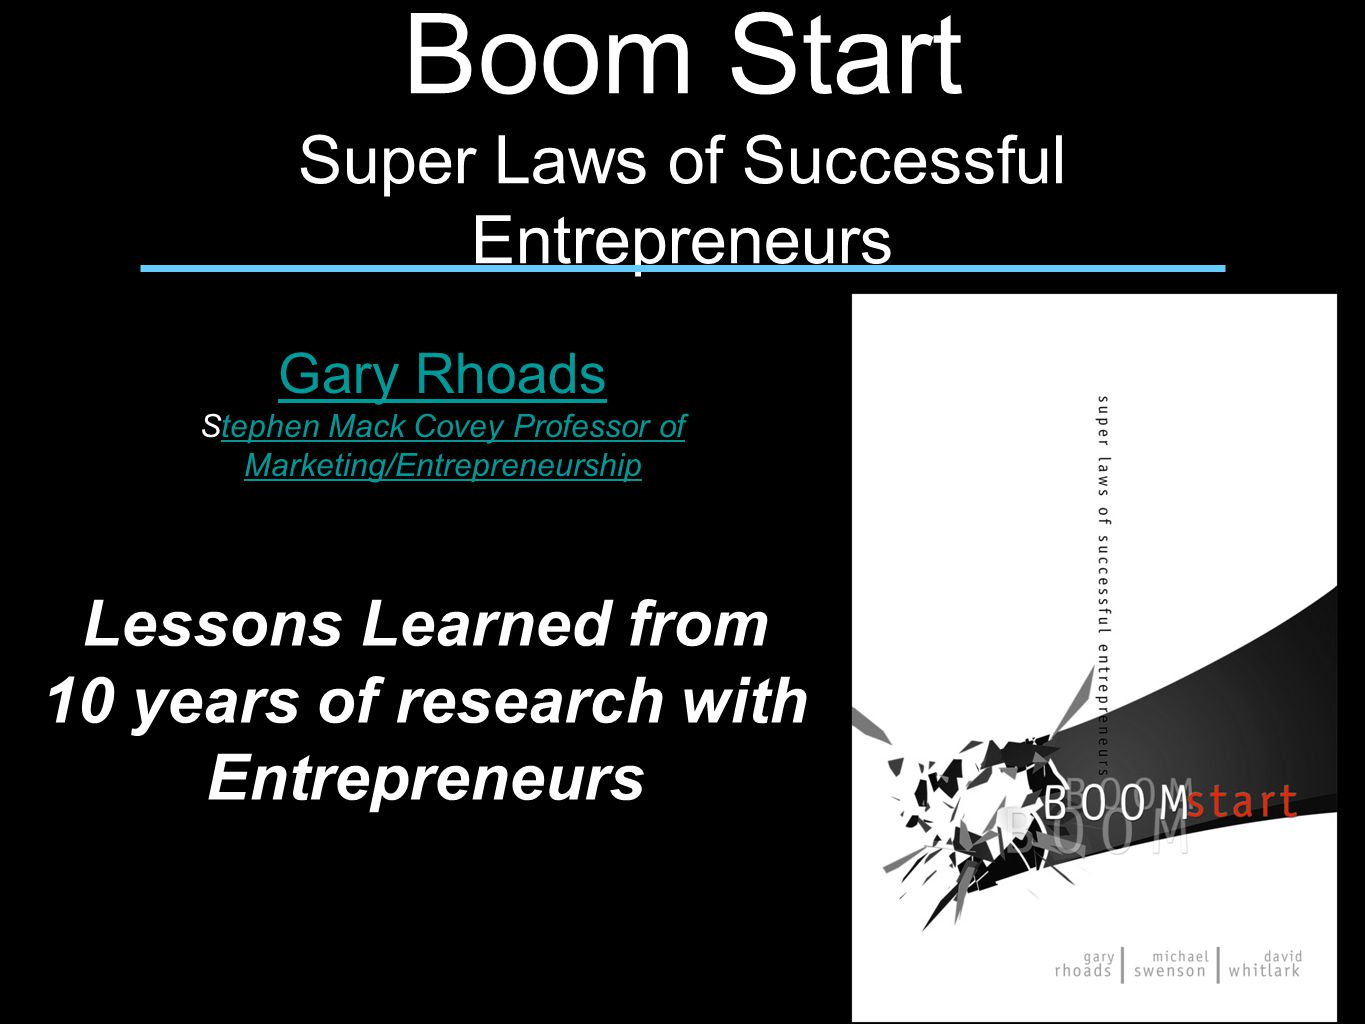 Boom Start Super Laws of Successful Entrepreneurs Gary Rhoads Stephen Mack Covey Professor of Marketing/Entrepreneurshiptephen Mack Covey Professor of Marketing/Entrepreneurship Lessons Learned from 10 years of research with Entrepreneurs